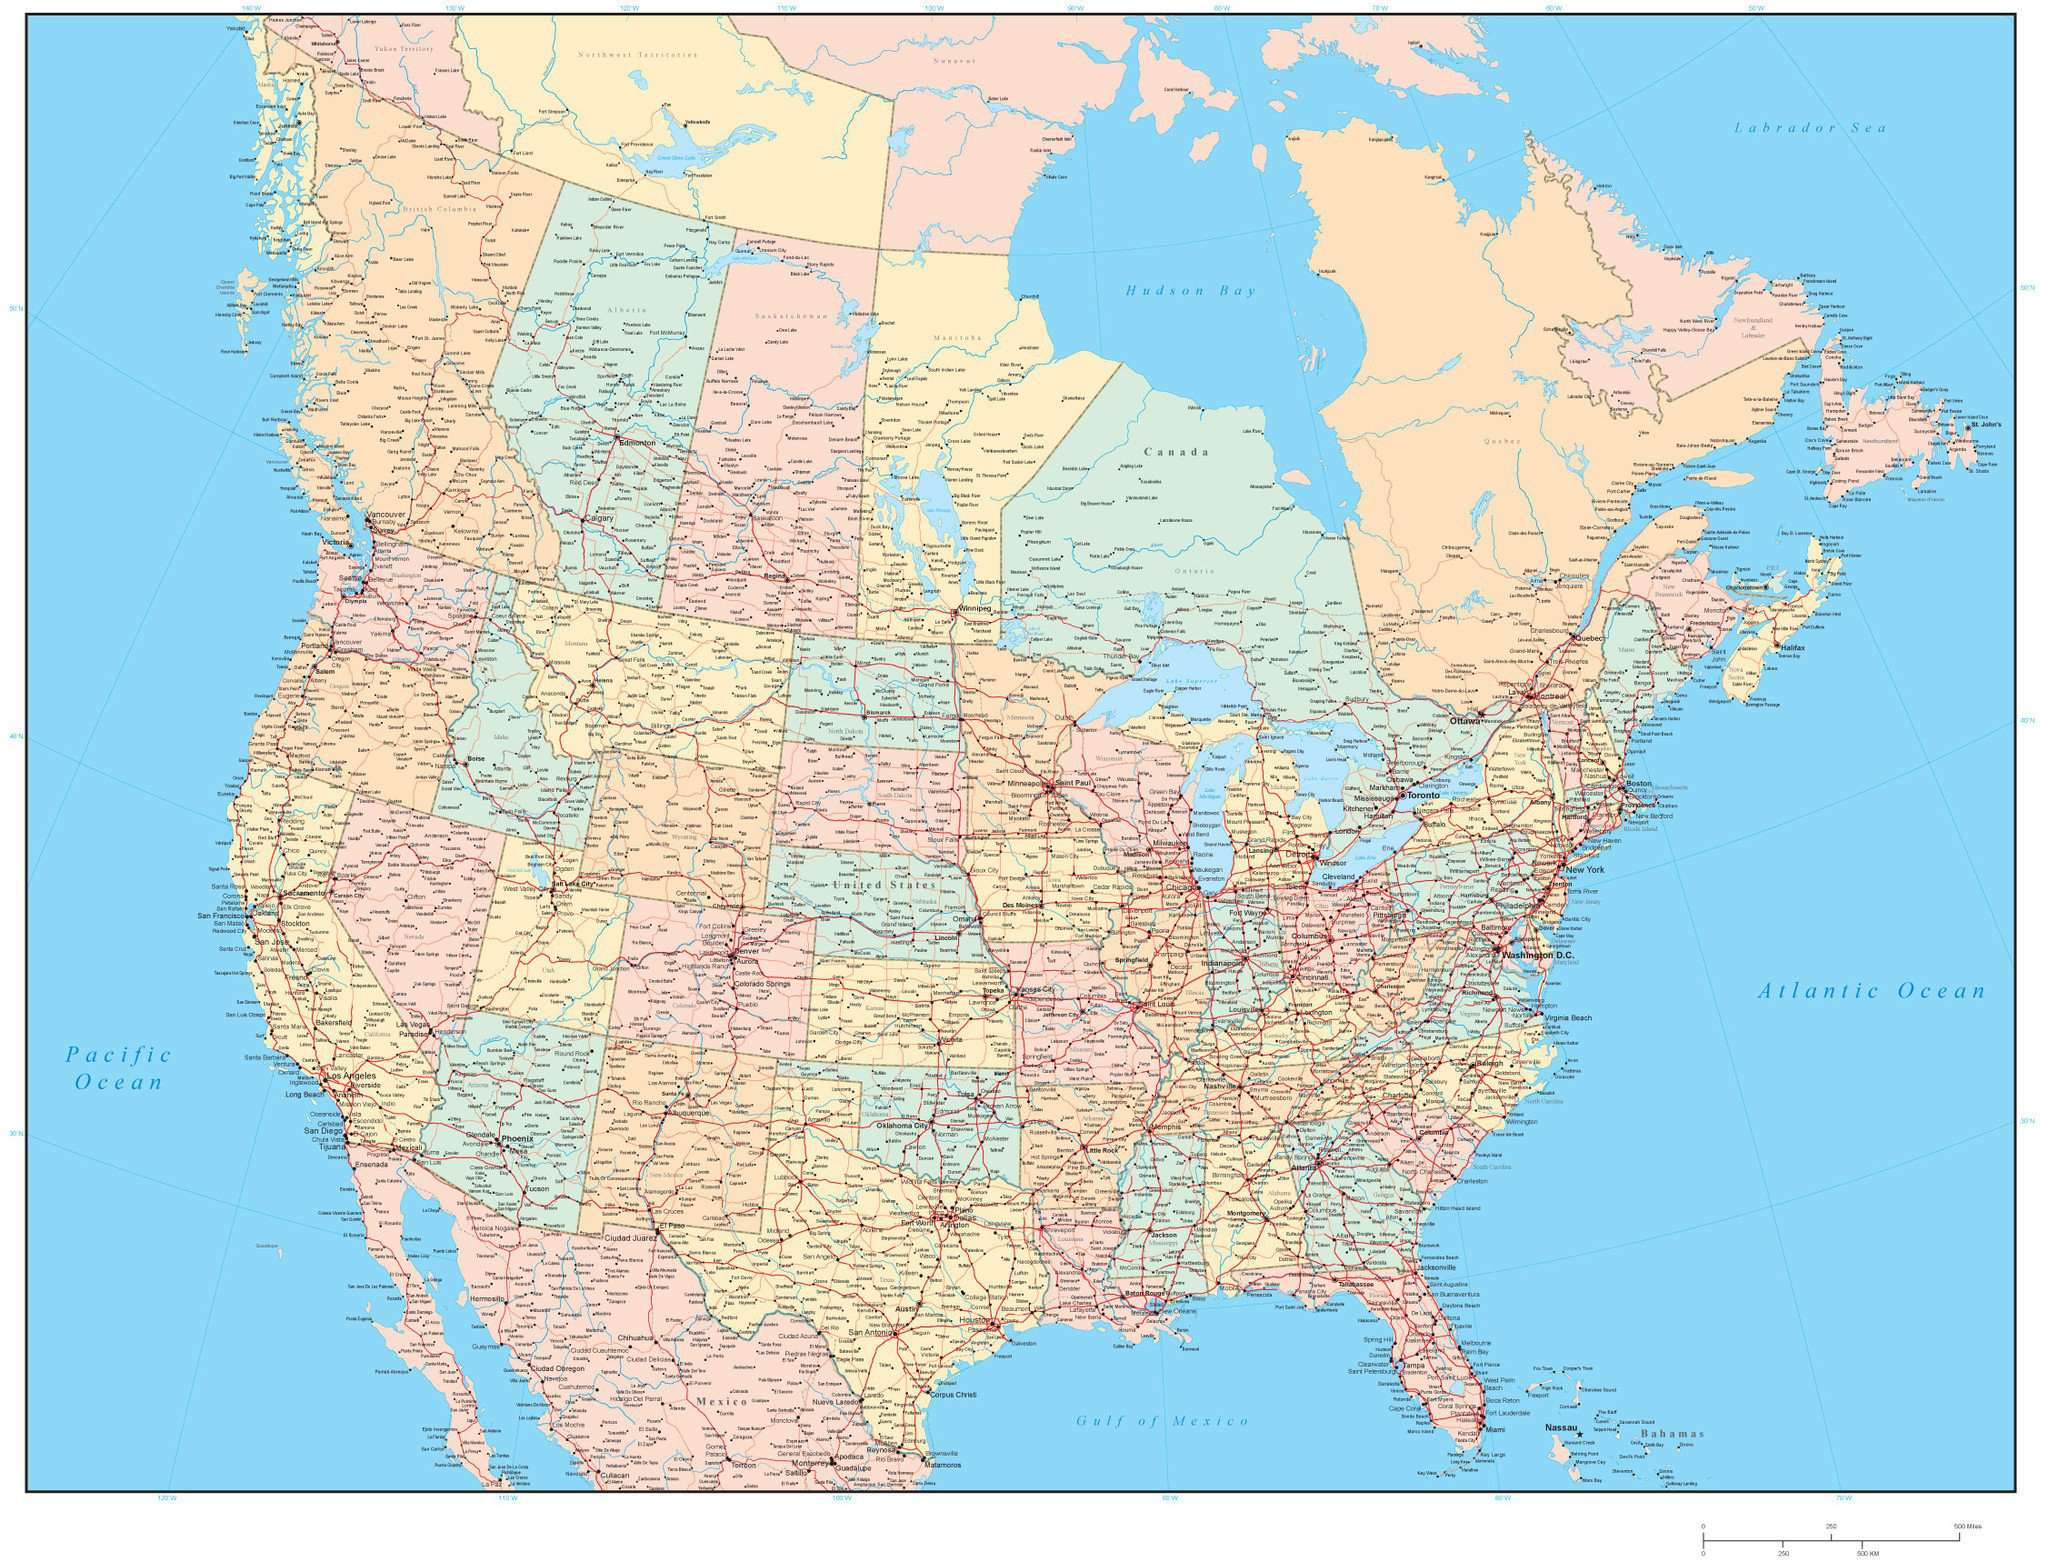 USA States And Capital An Major Cities Map TRAVEL Road Trip Map - Usa road map free download